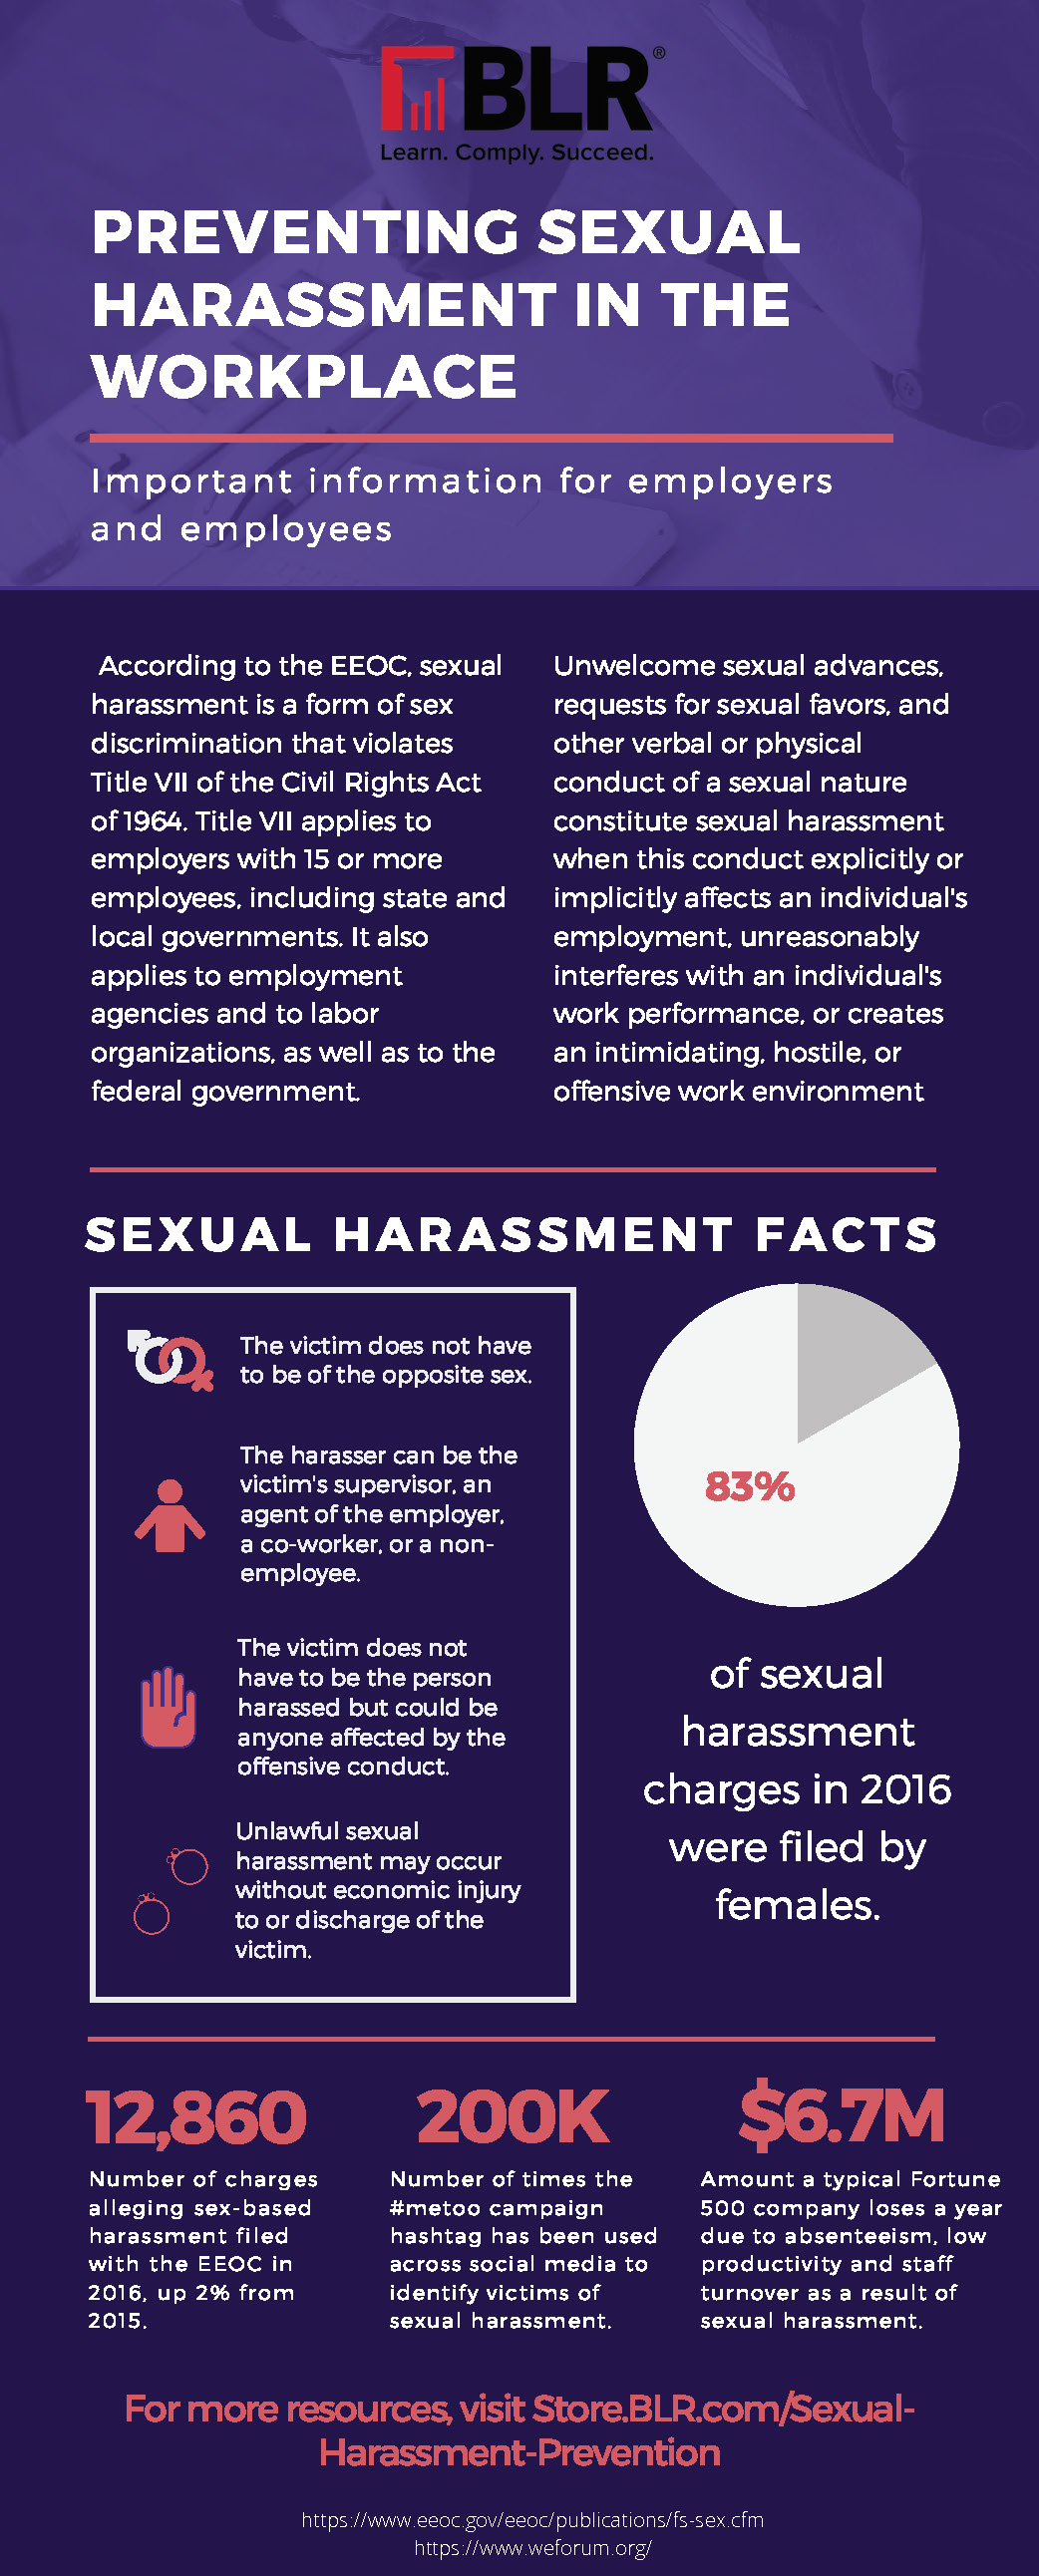 Hr brochures workplace sexual harassment